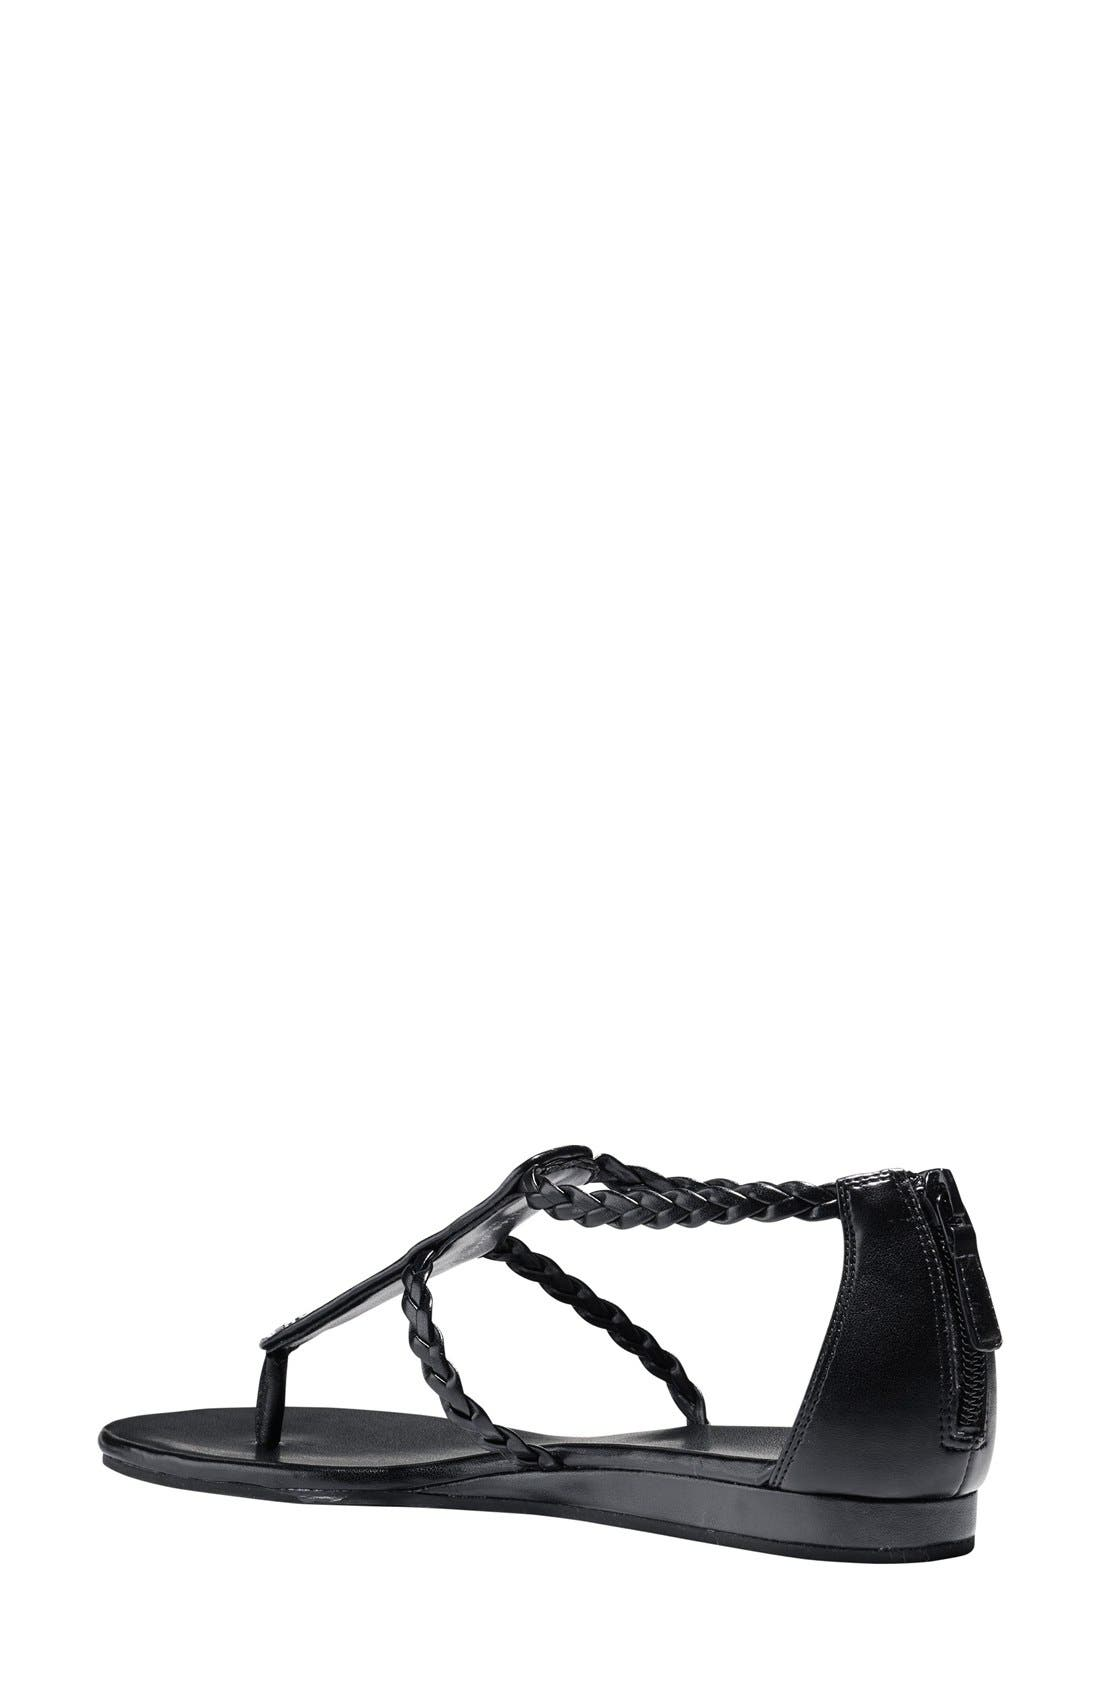 'Abbe' Sandal,                             Alternate thumbnail 7, color,                             Black/ White Leather